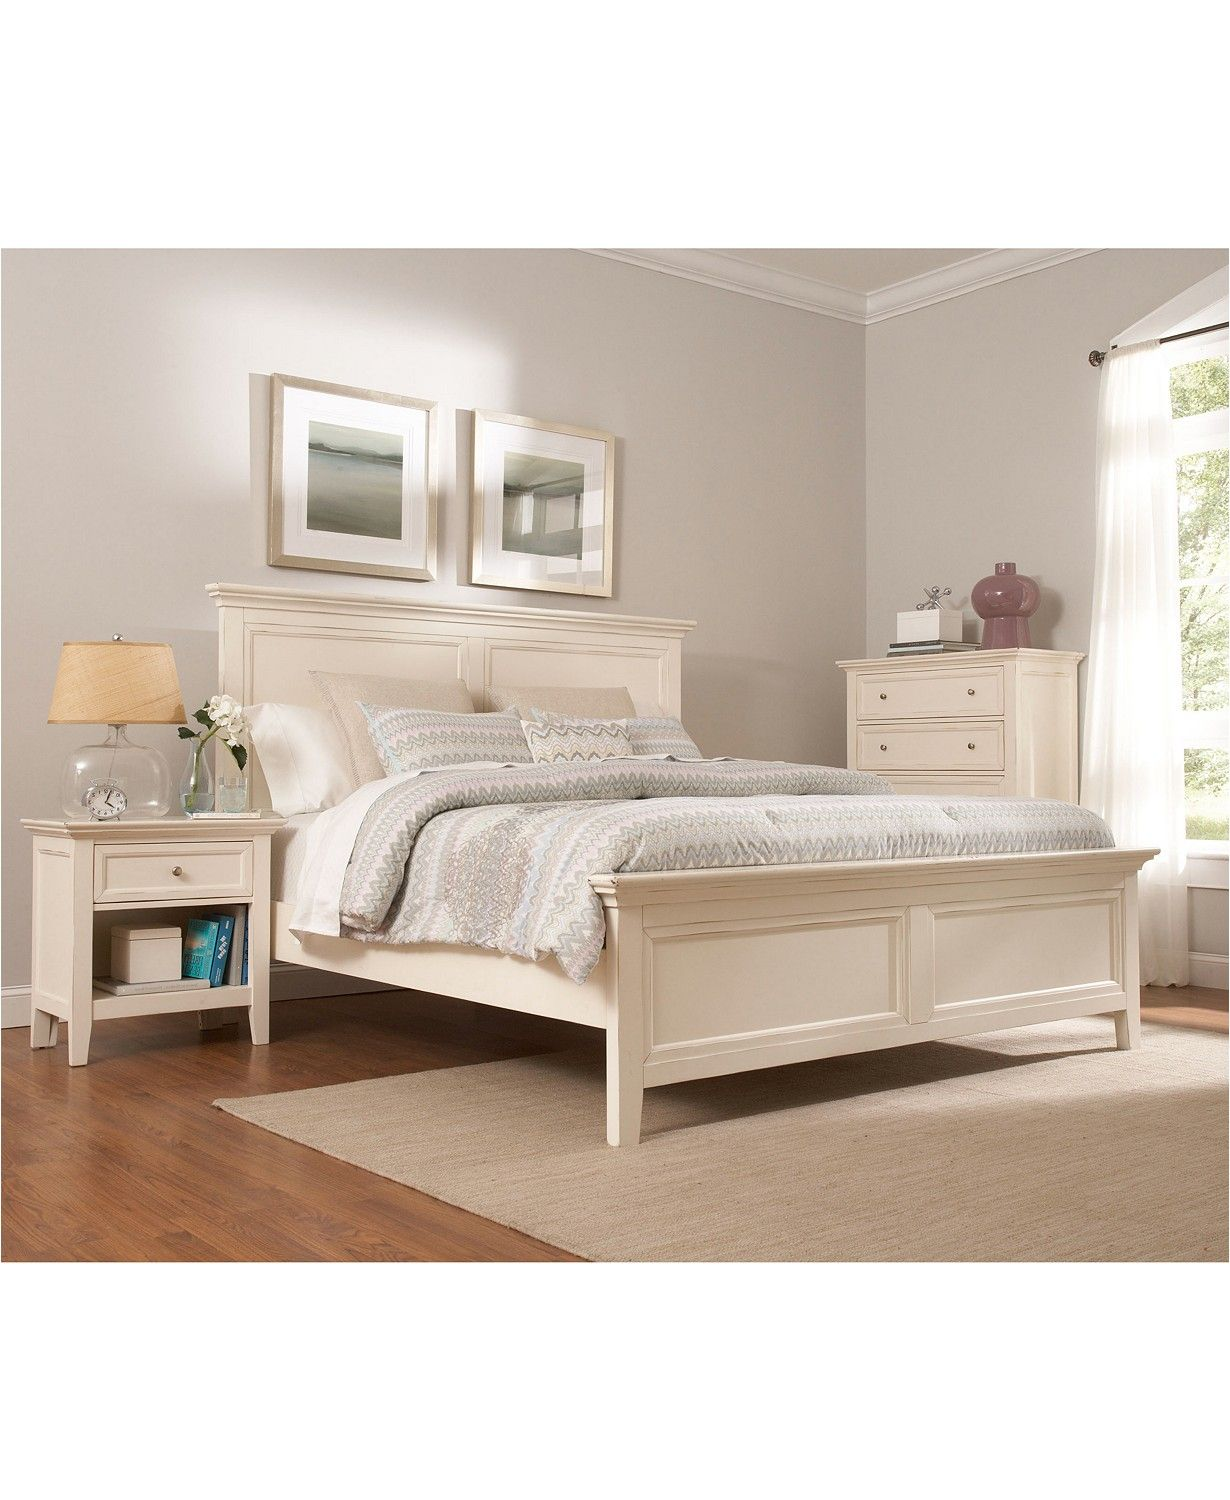 Manhattan Bedroom Furniture Collection - Furniture - Macy's